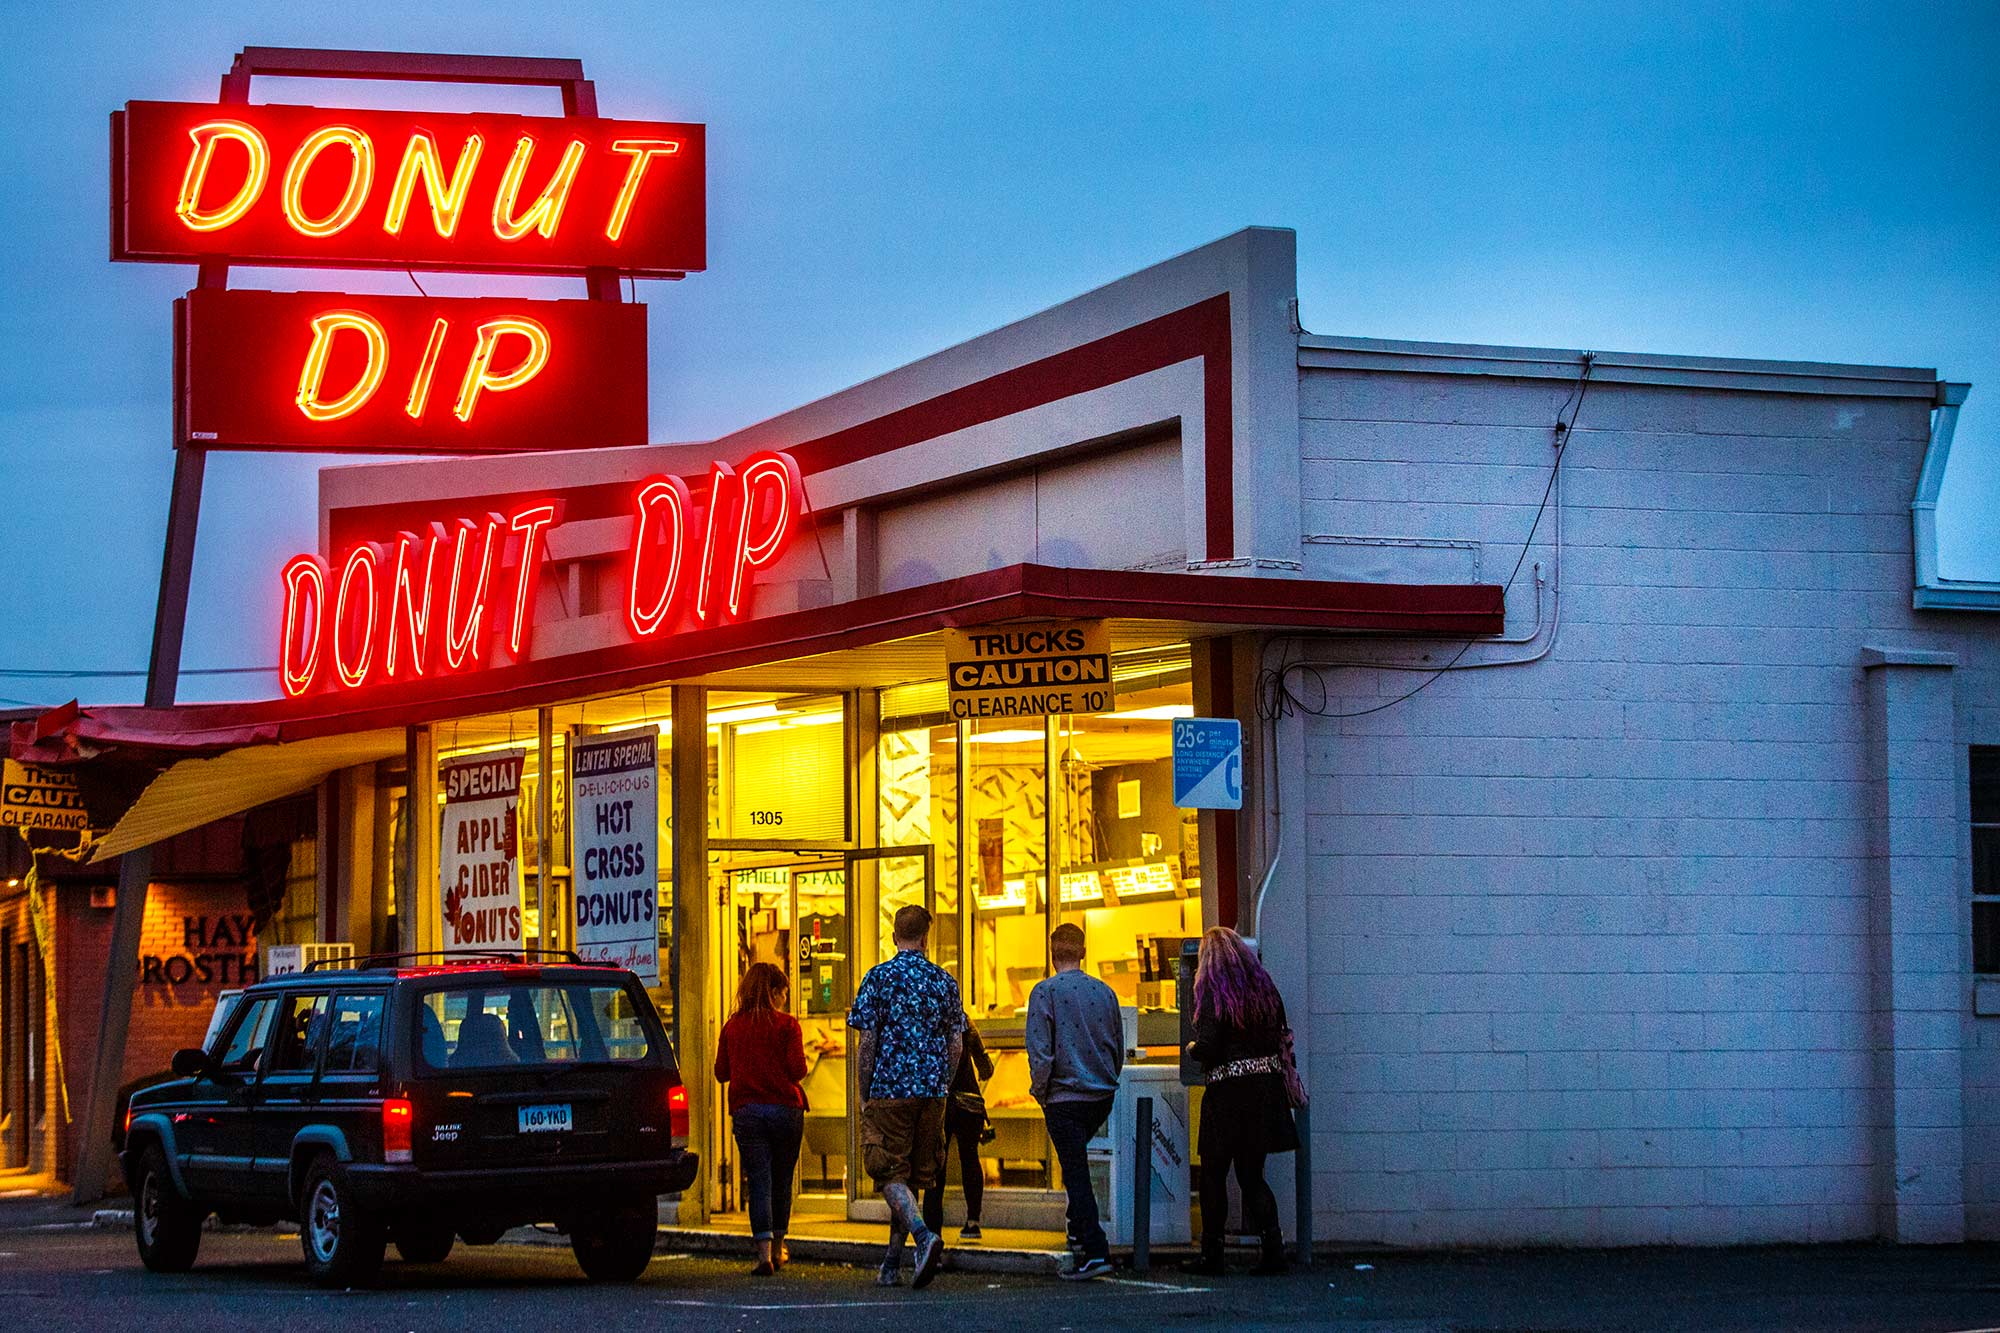 Donut Dip, West Springfield, MA - 3/13